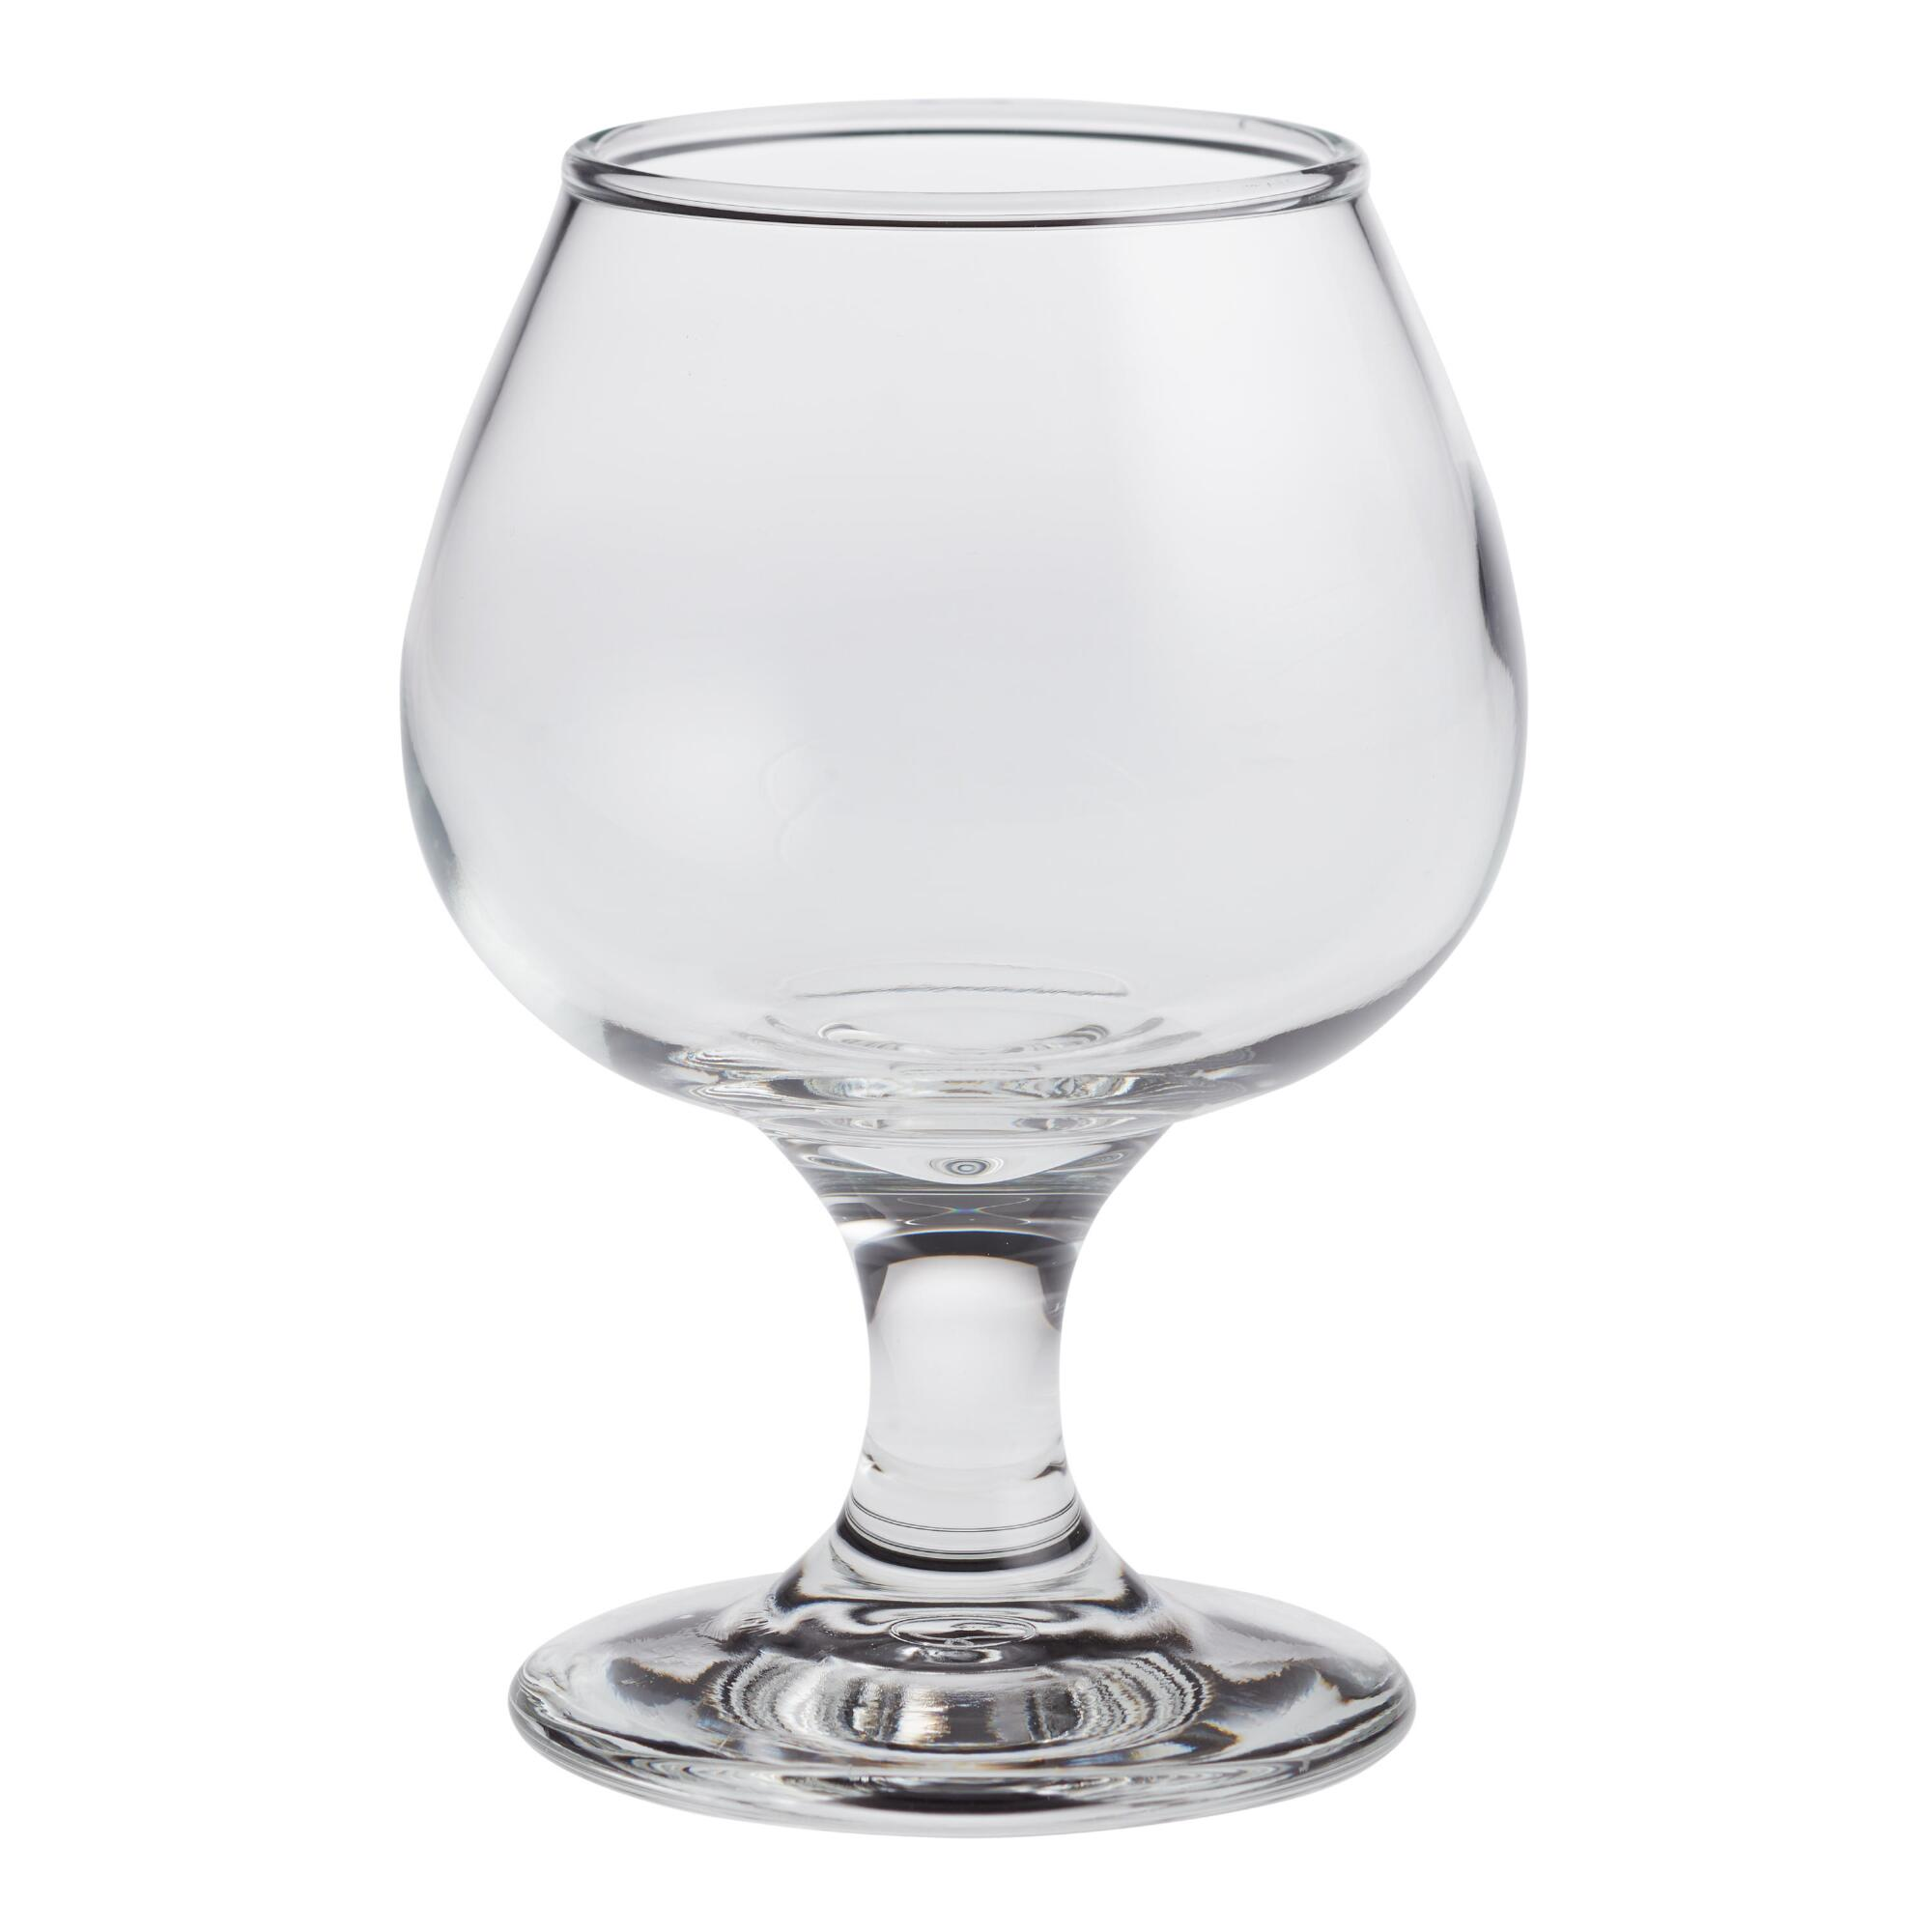 Small Brandy Glasses, Set of 4 by World Market